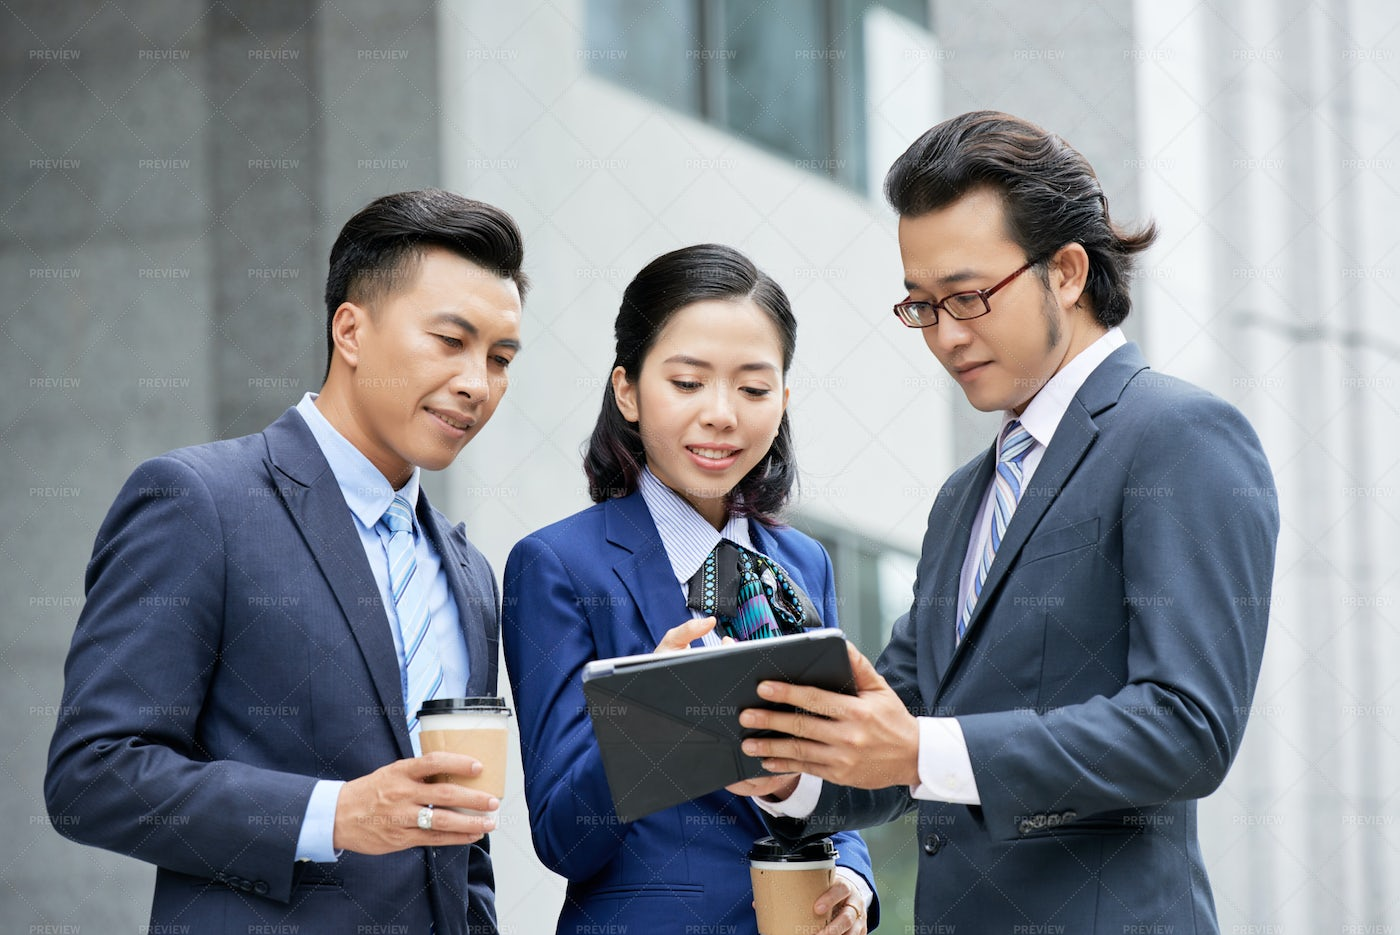 Business People Discussing Online: Stock Photos